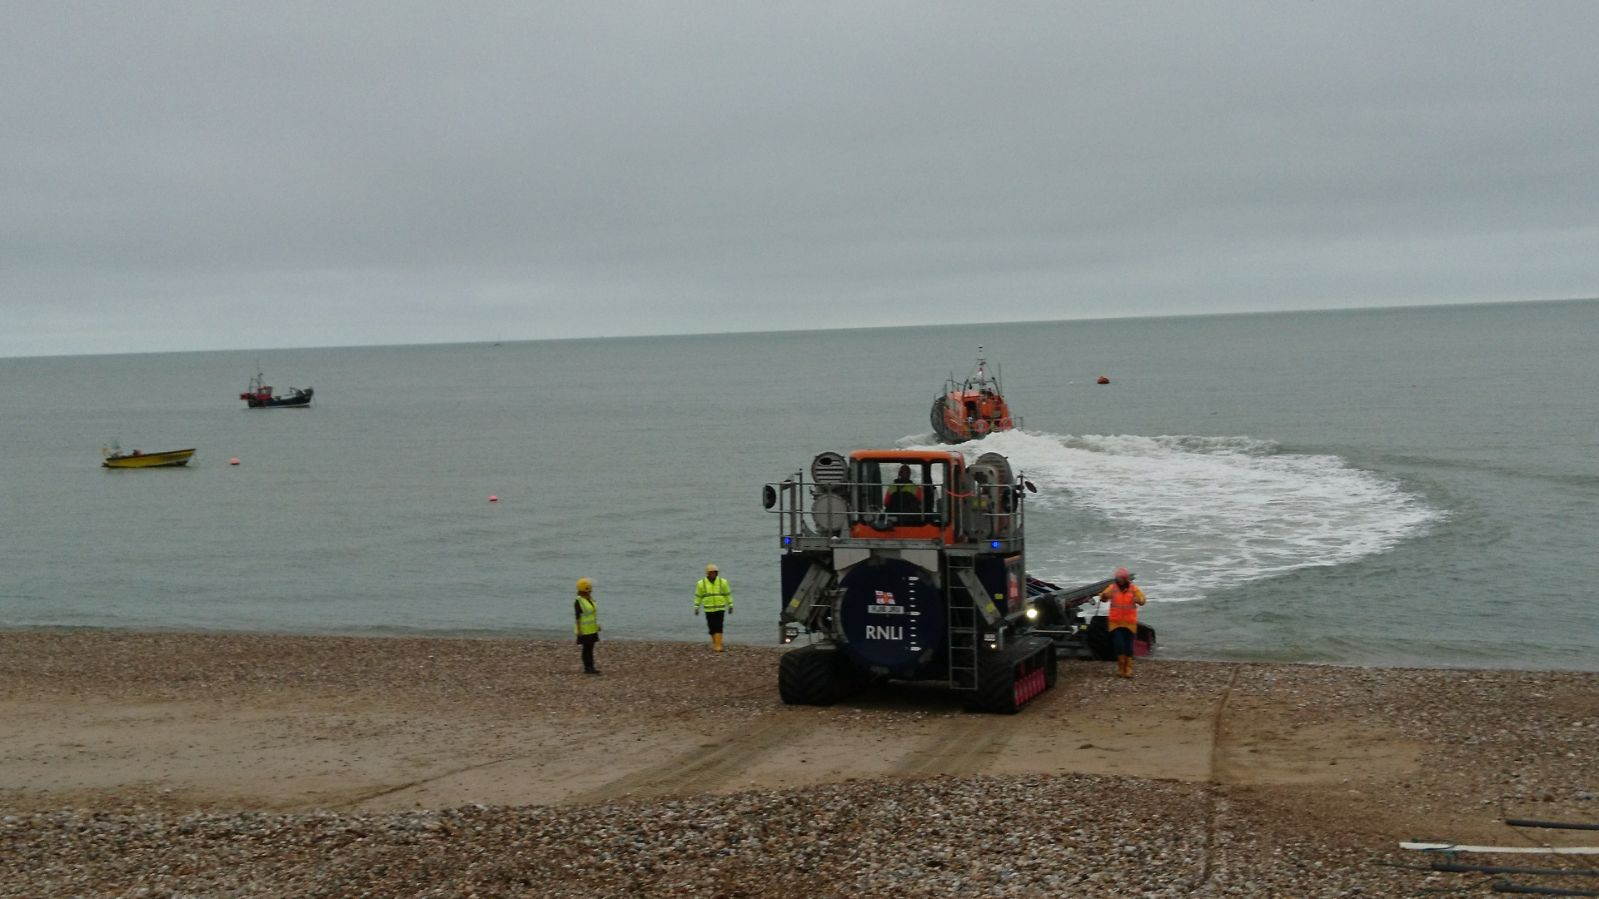 Selsey lifeboat launching